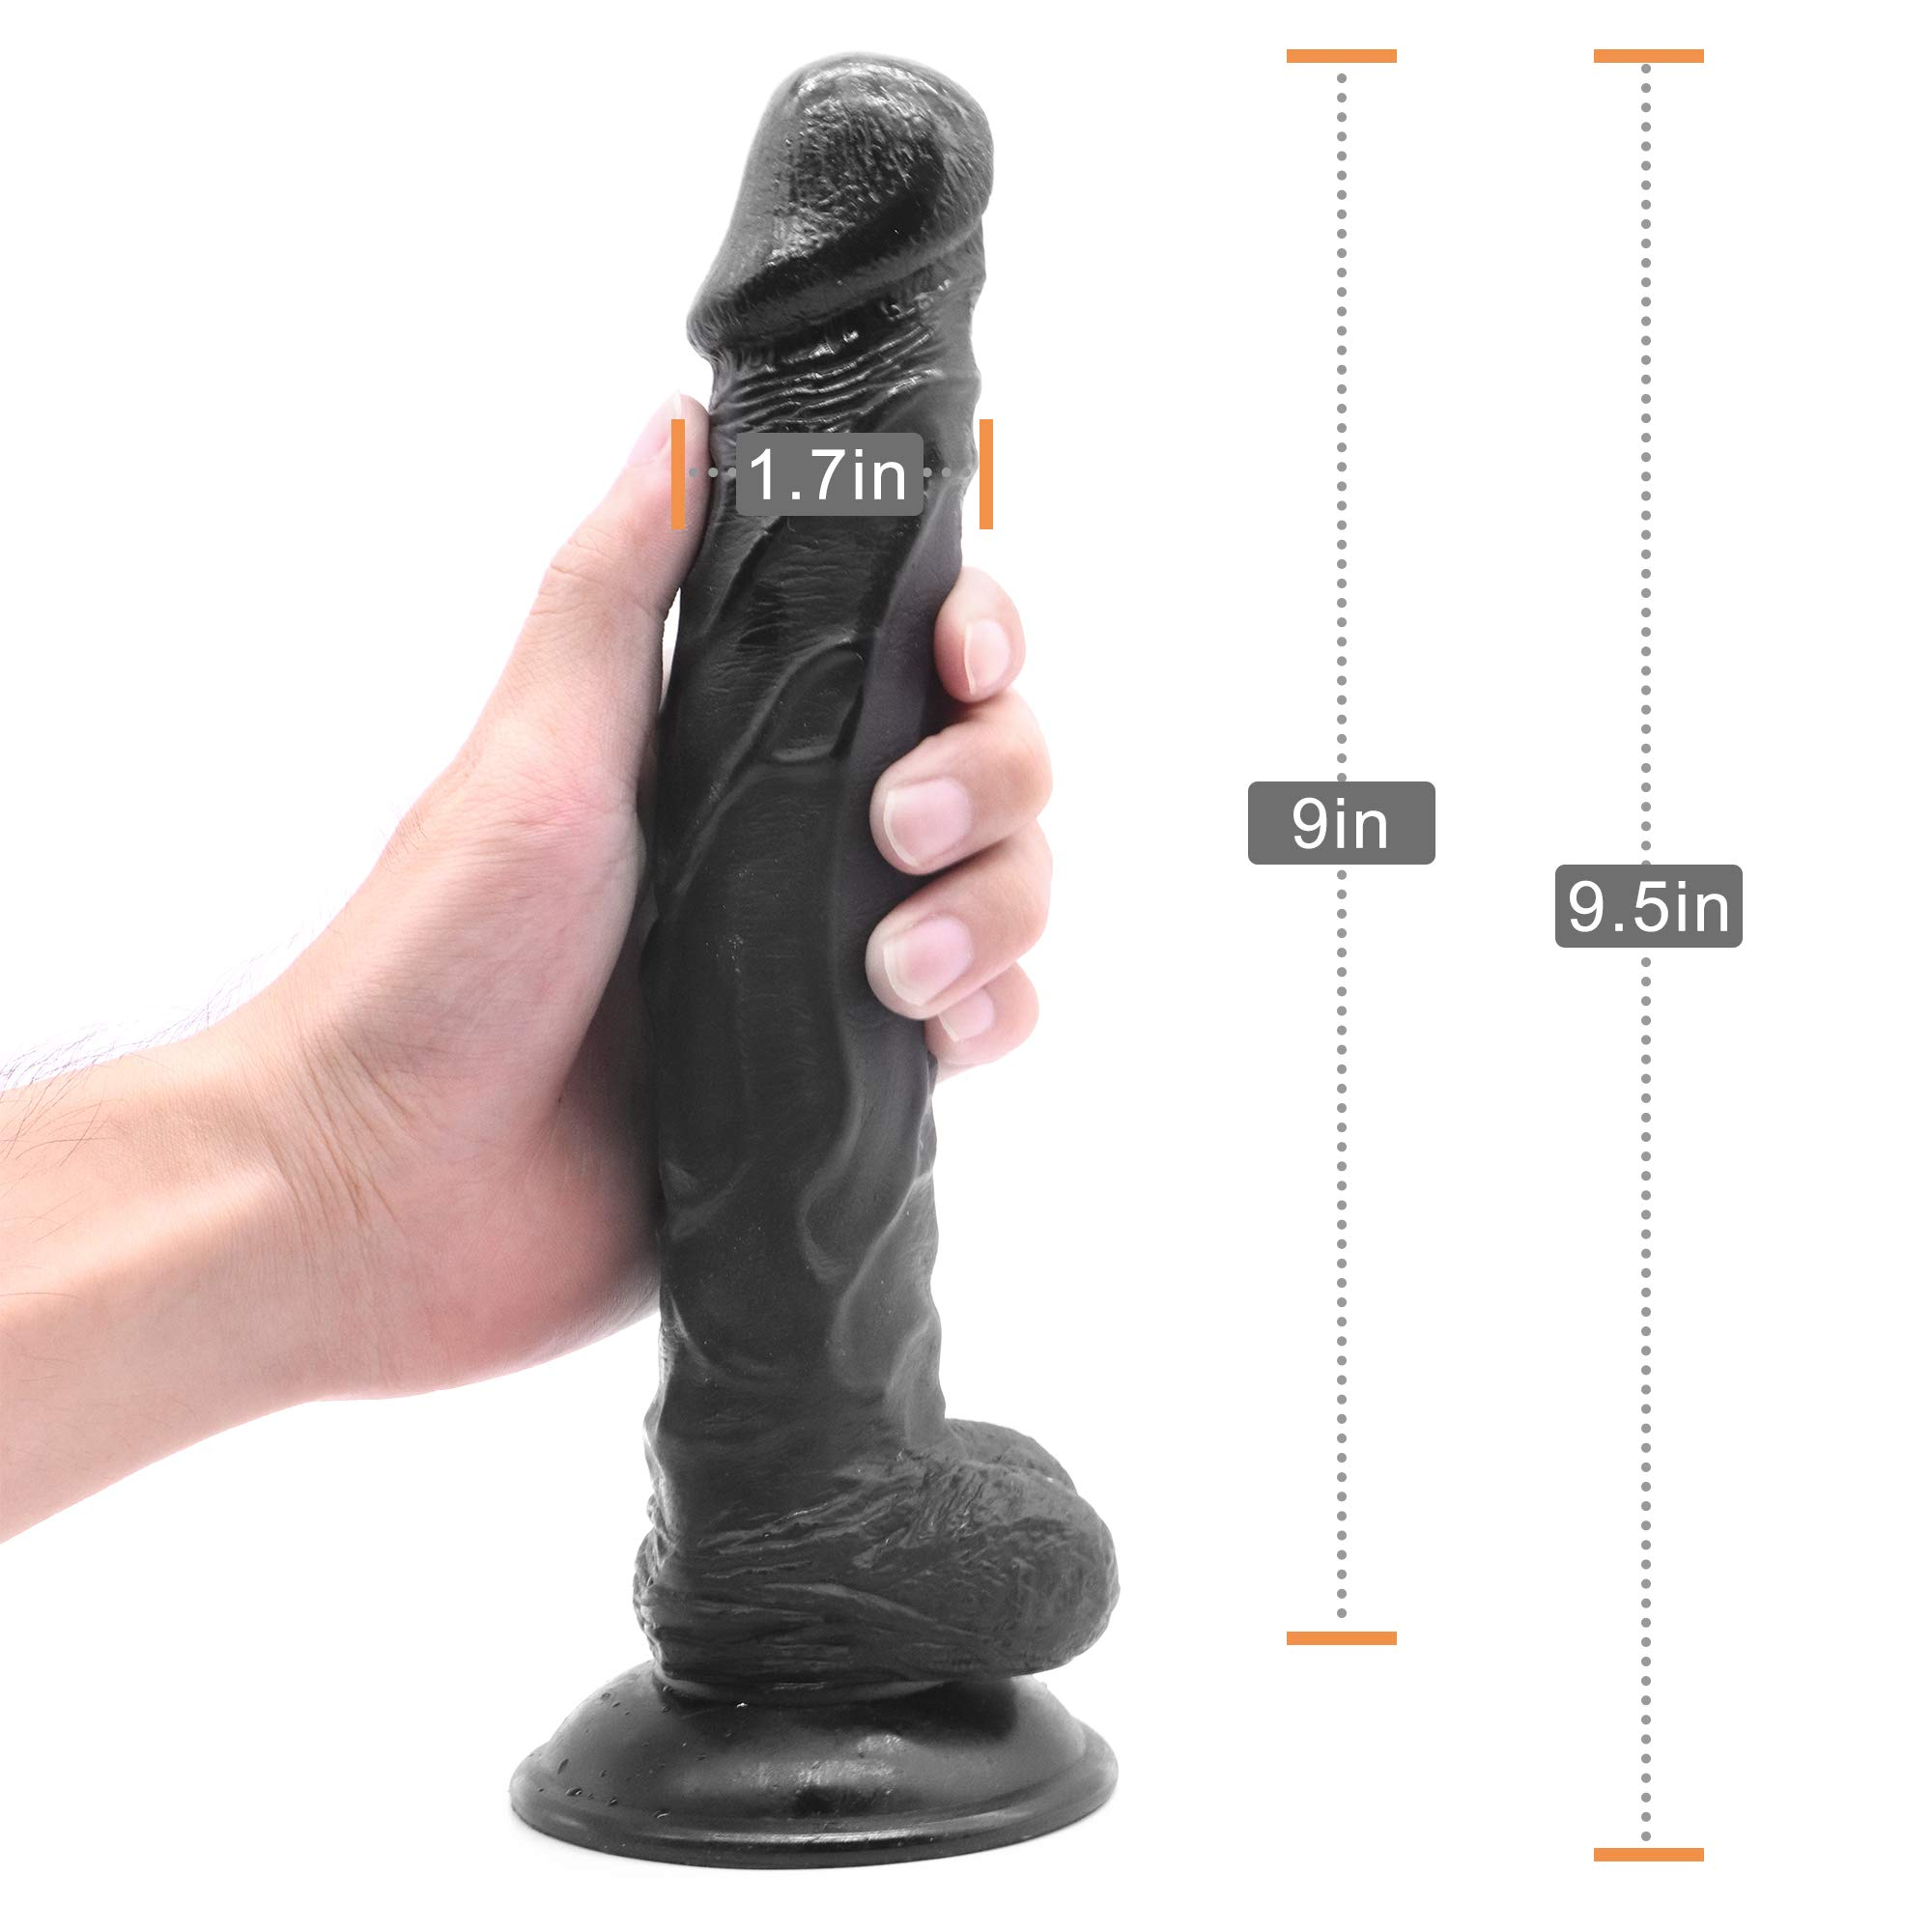 HU-PK 9.5 inches Black Soft Incredible Toy Used for Special Holiday, Role-Playing Convention, Bridal Party